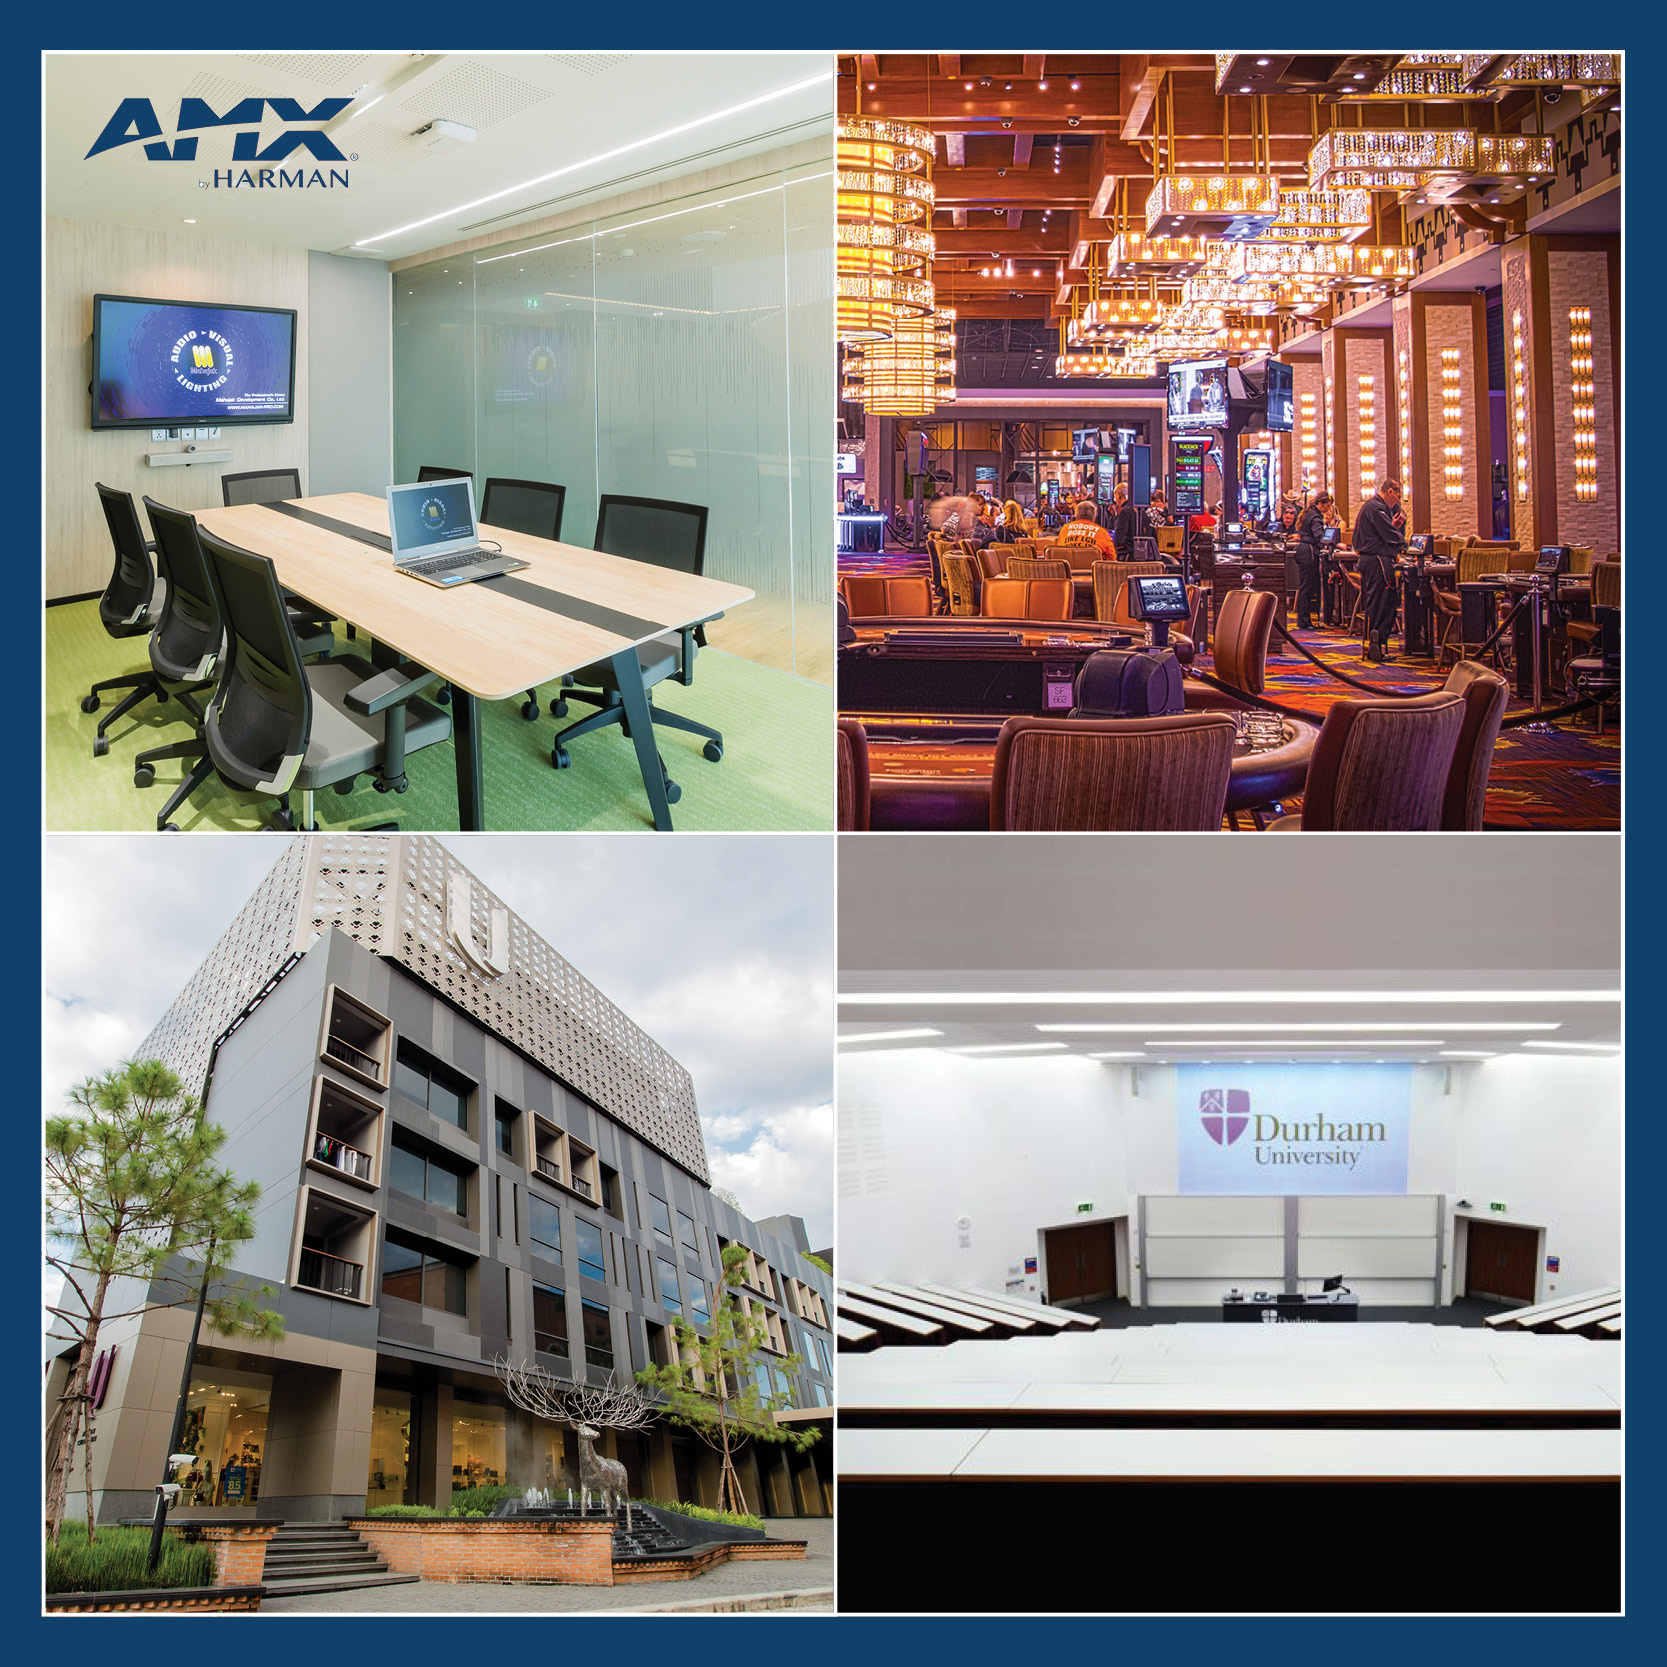 AMX provides state-of-the-art audiovisual solutions around the world